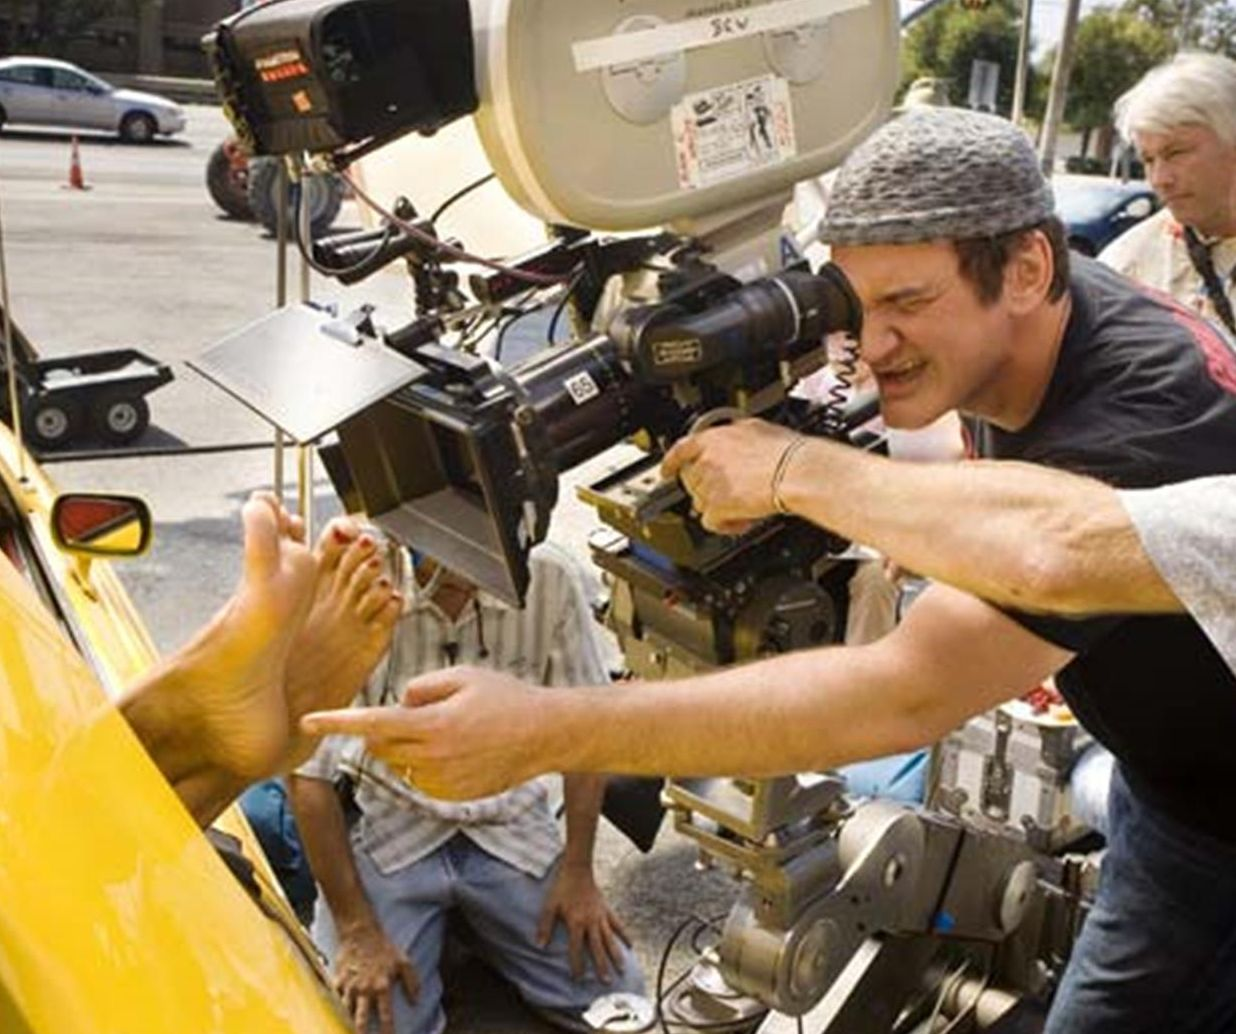 Quentin Tarantino filming some feet